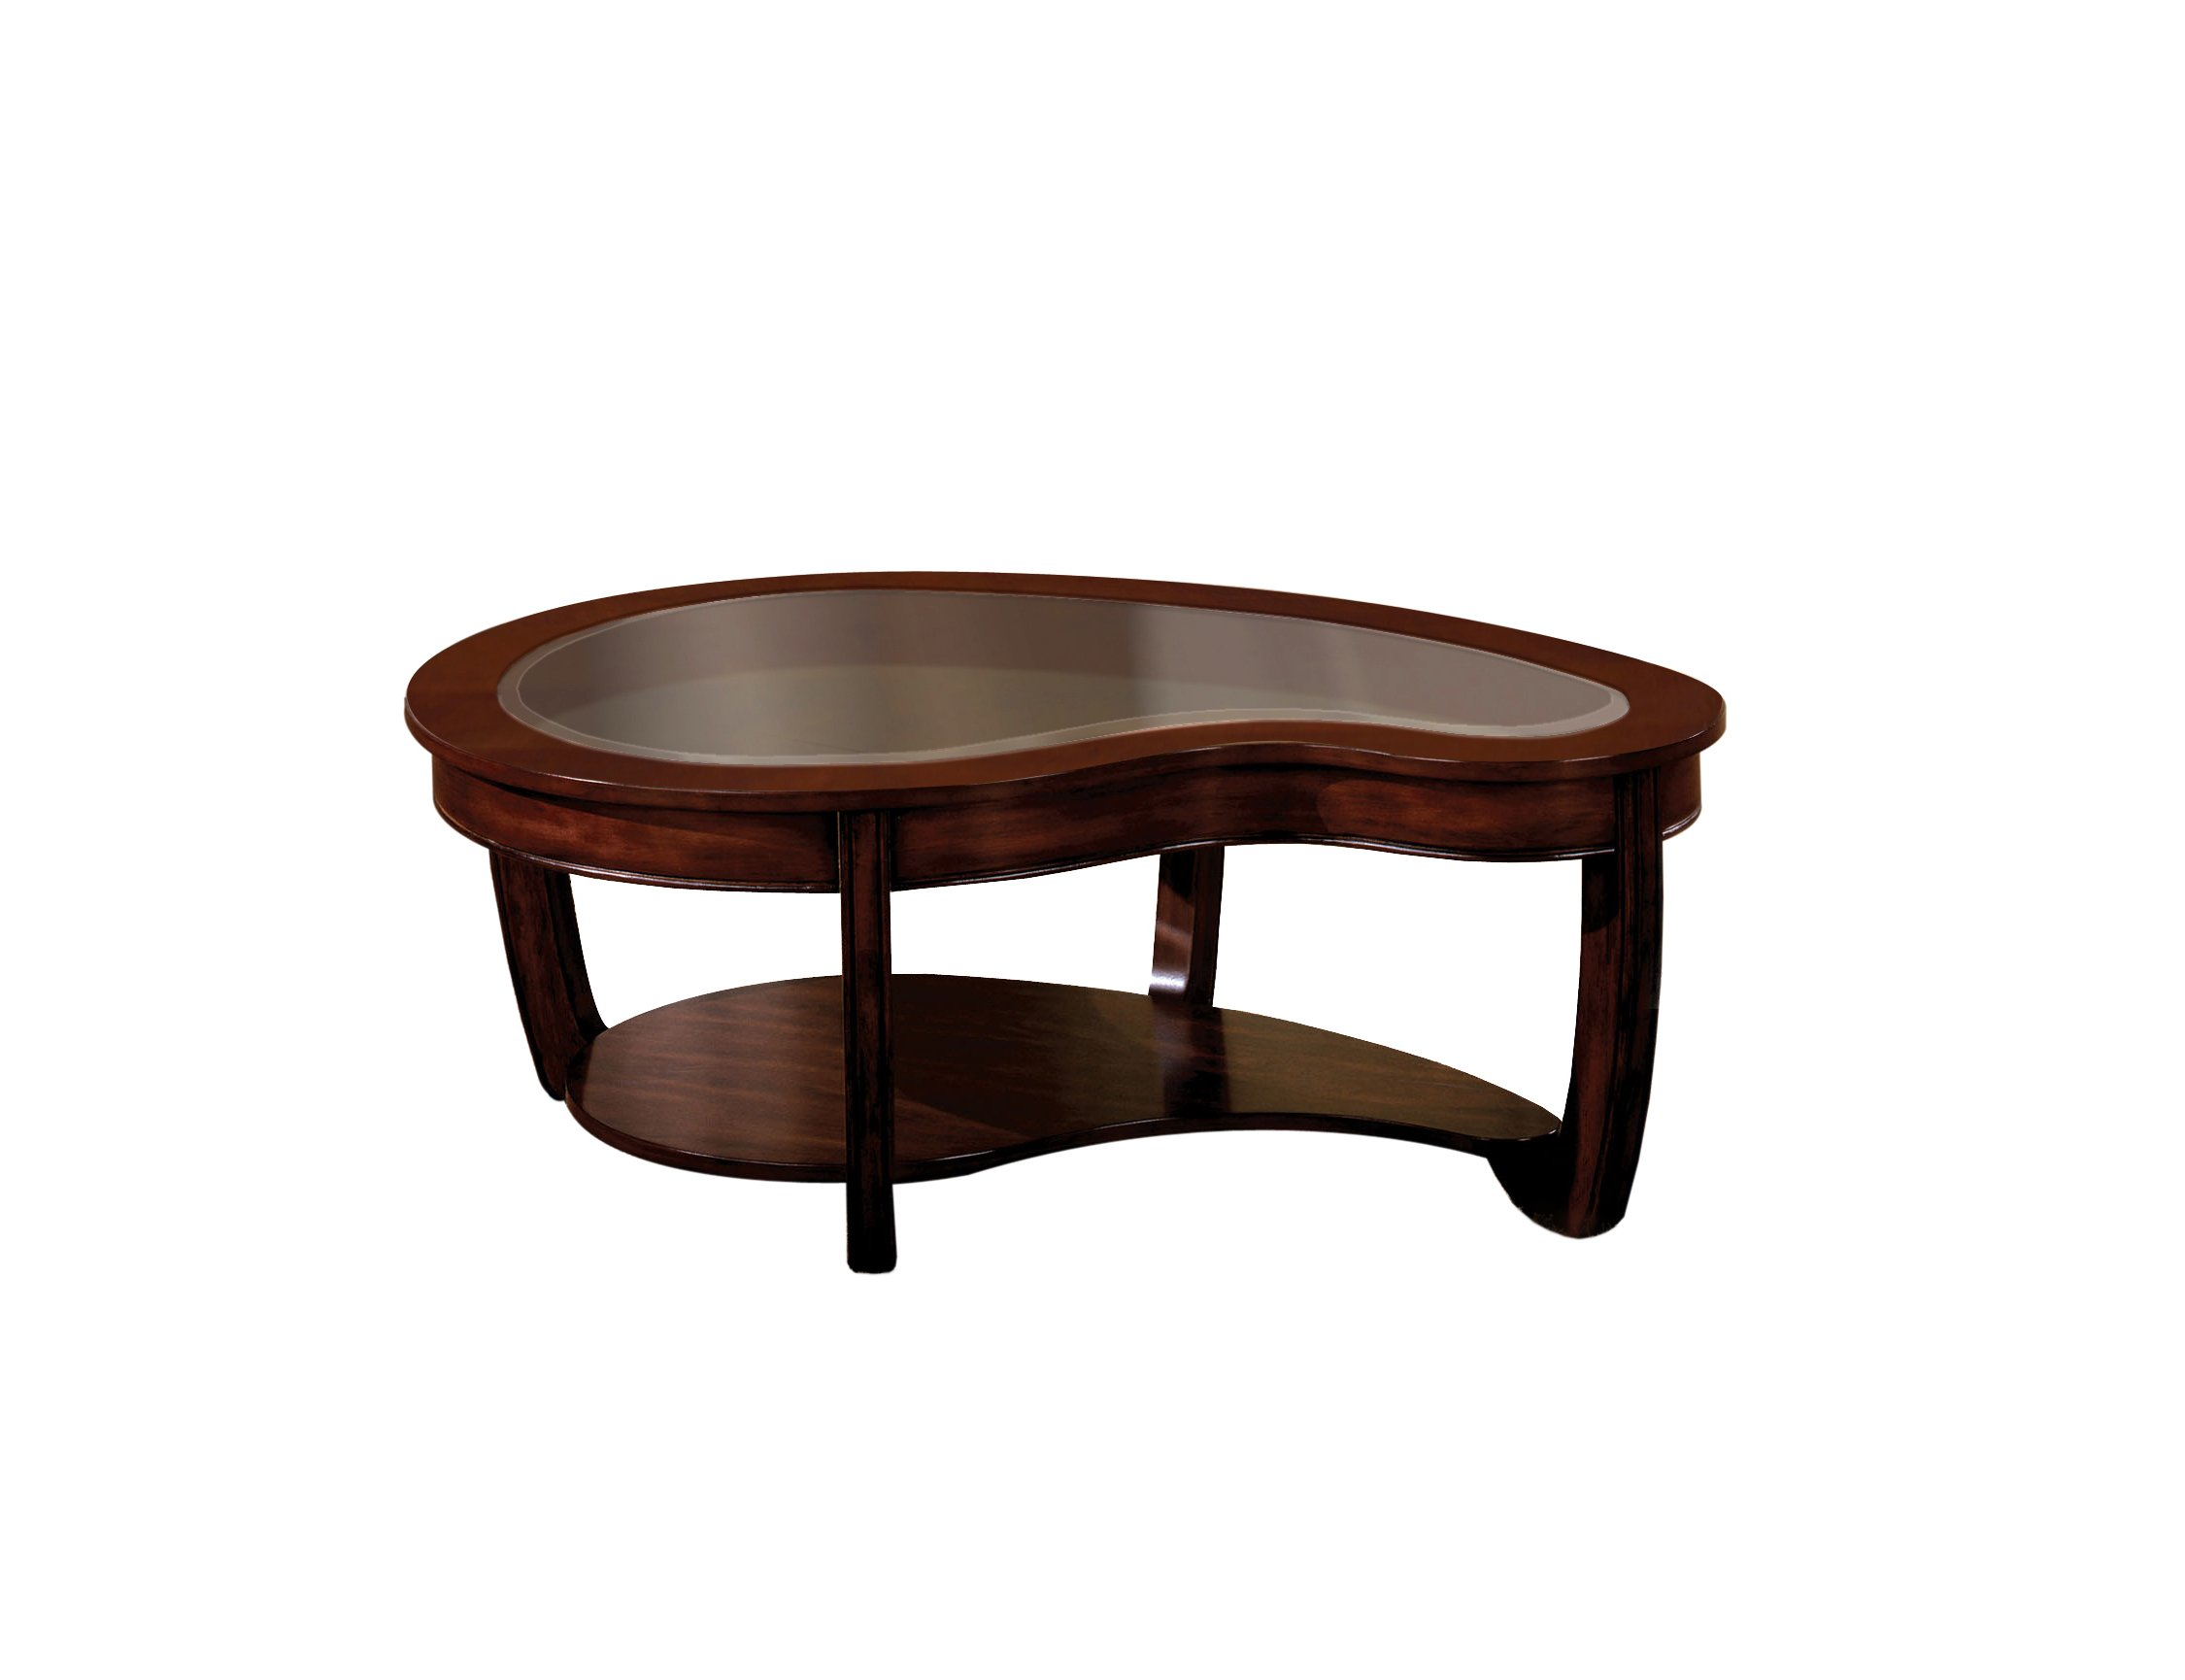 Furniture of America Byrnee Coffee Table with 5mm Beveled Glass Top, Dark Cherry Finish by Furniture of America